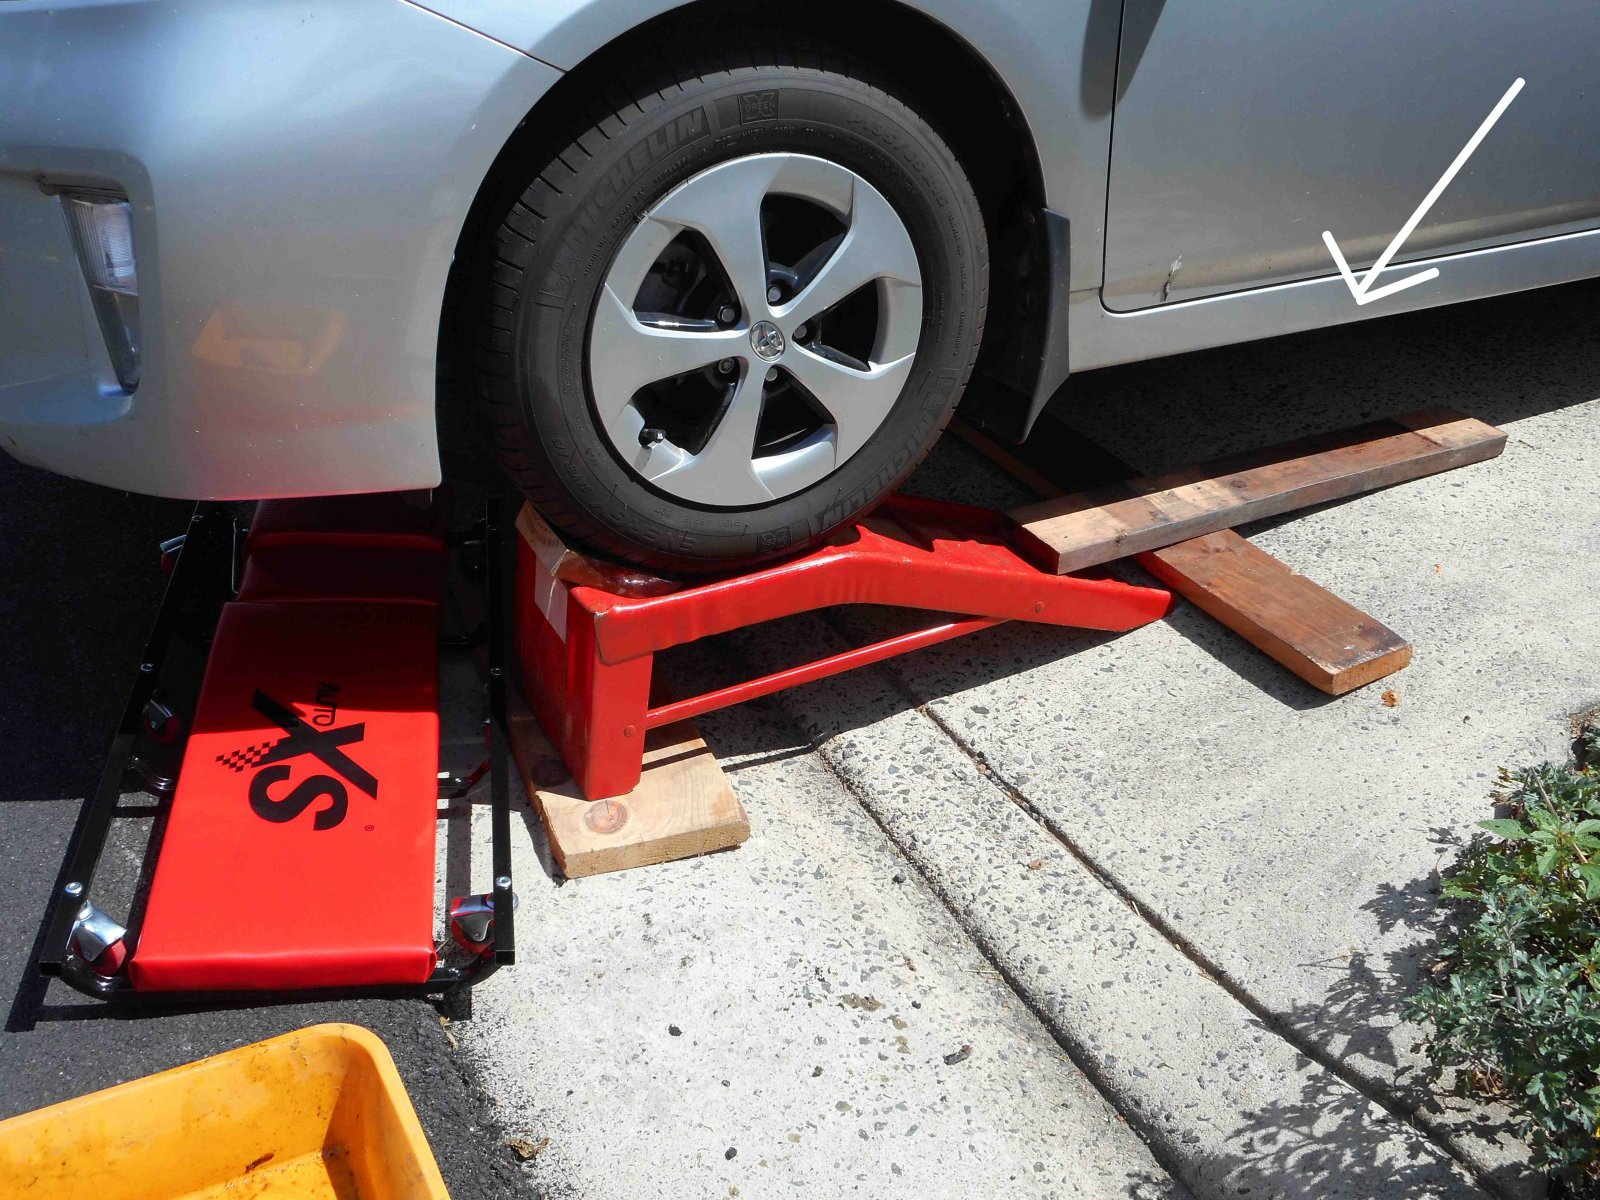 Diy car service ramps